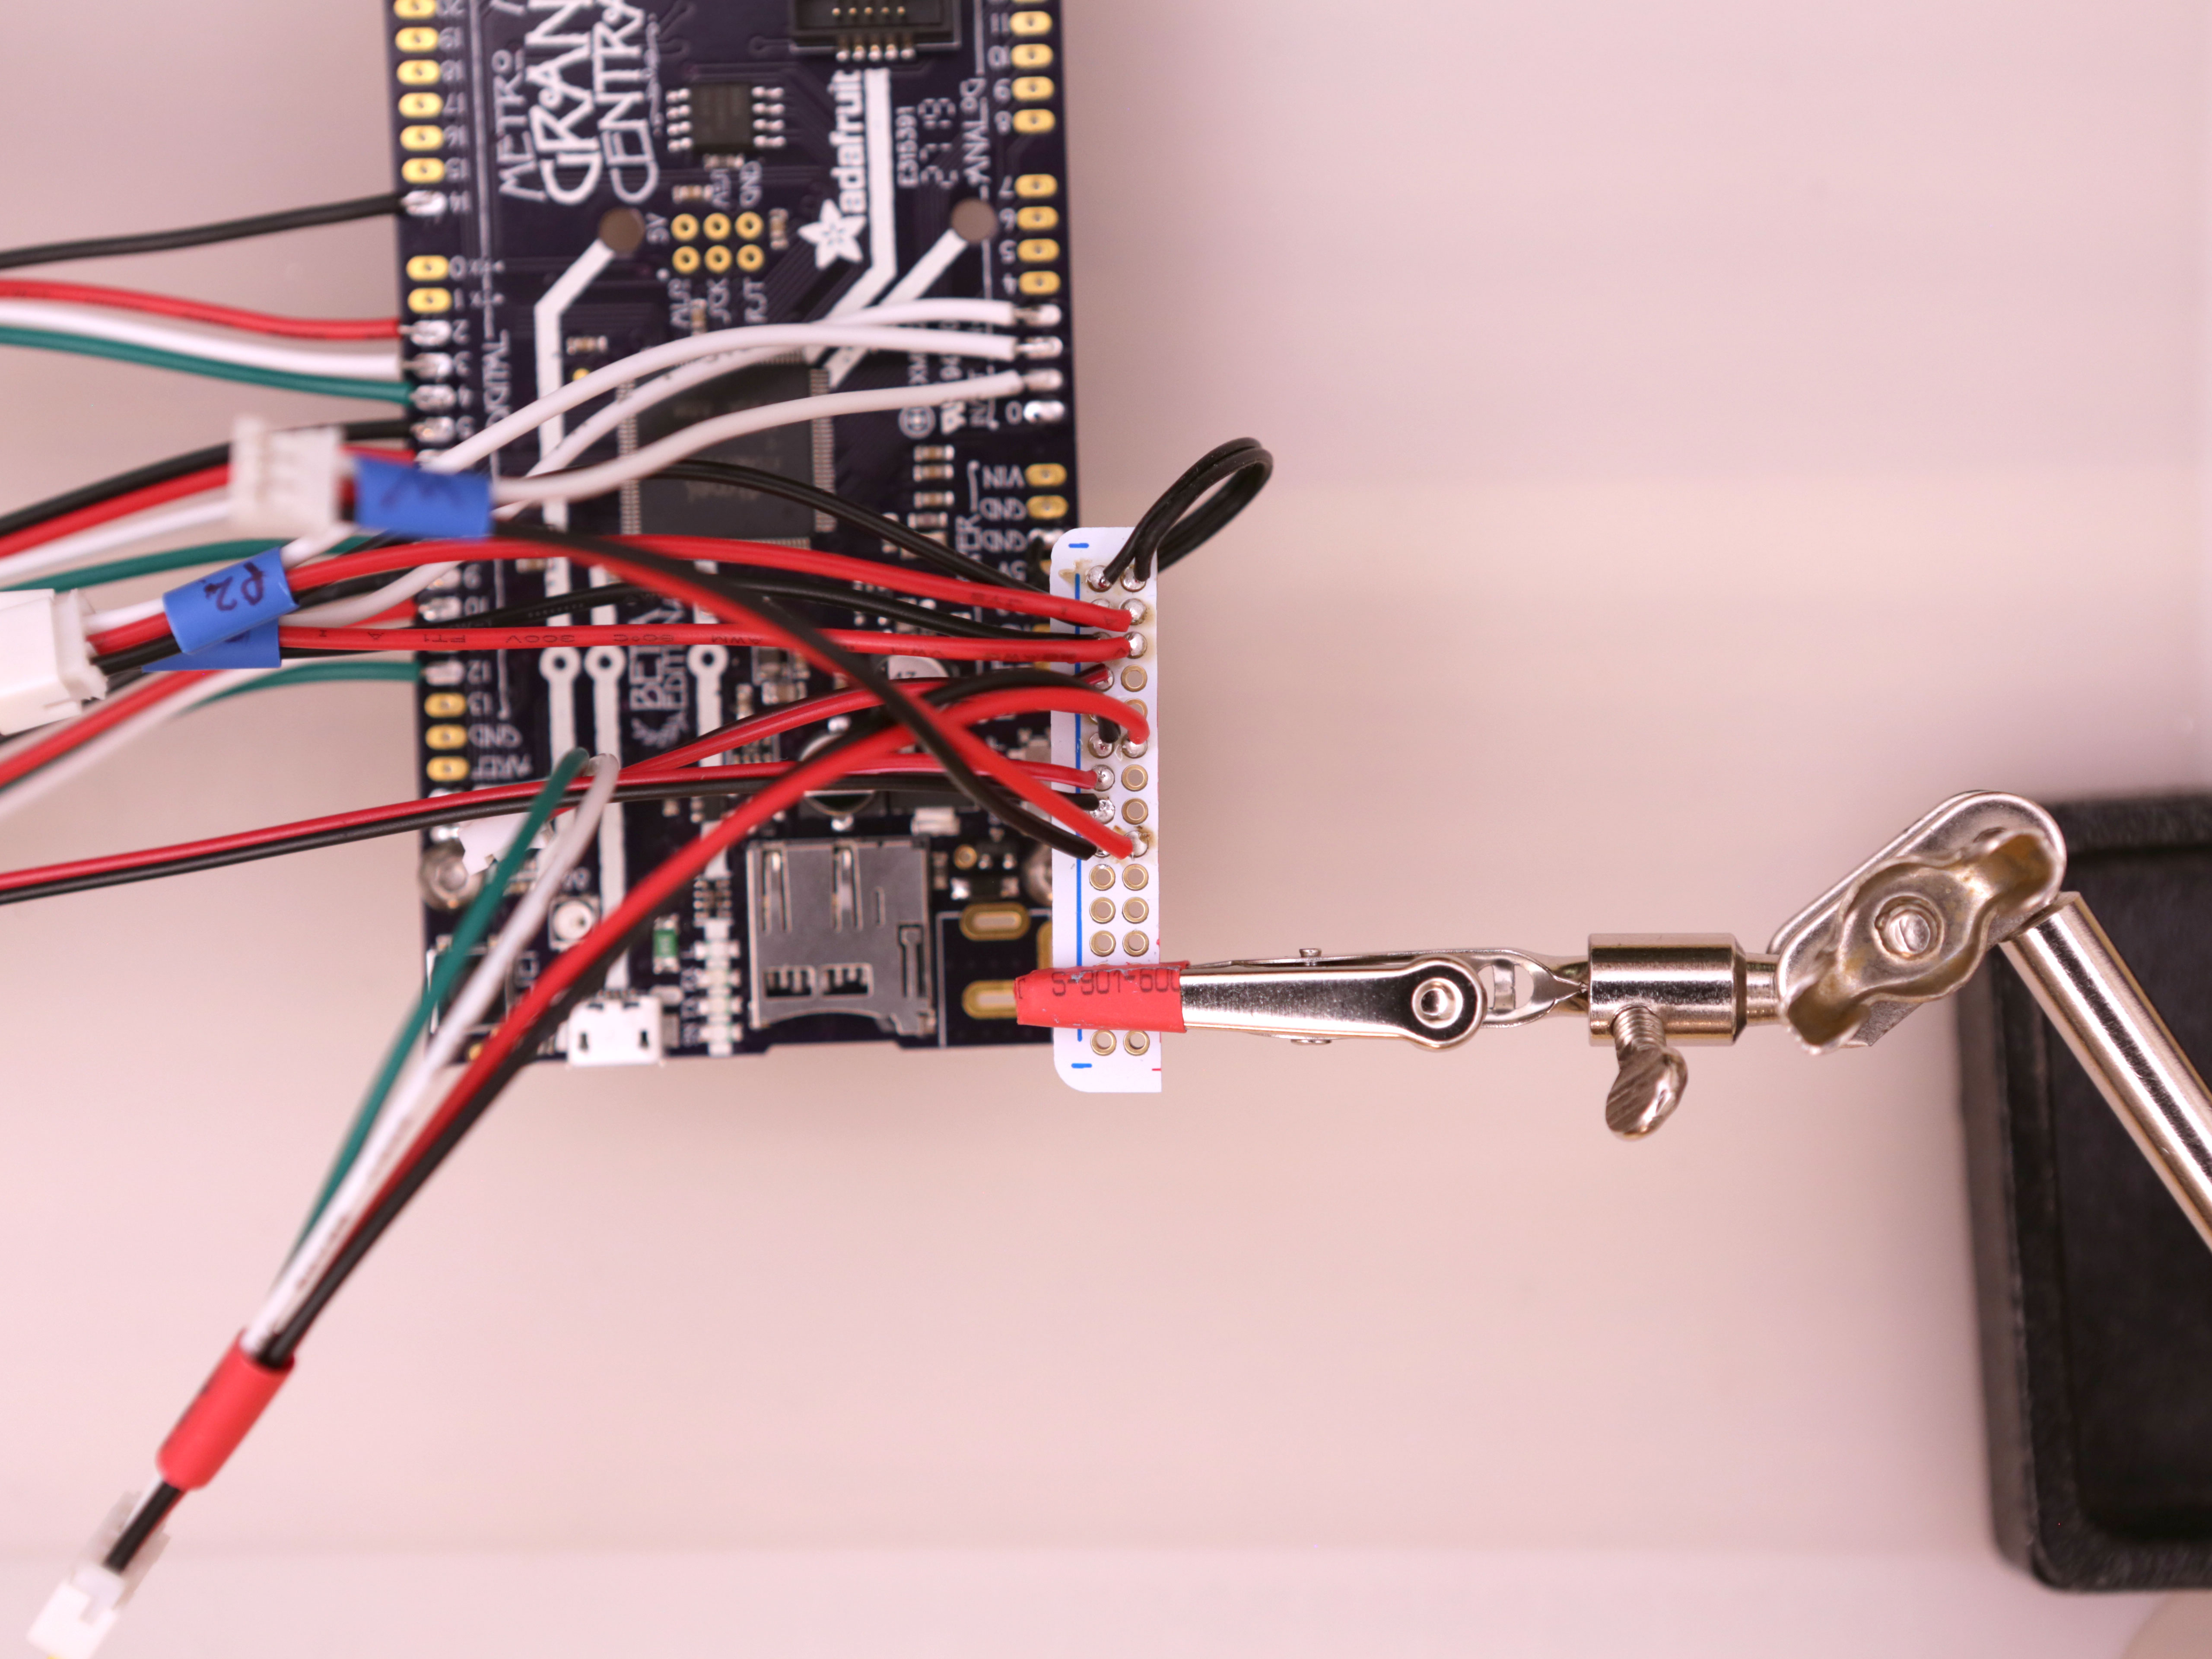 3d_printing_m4-wire-whammy-gnd-pwr.jpg